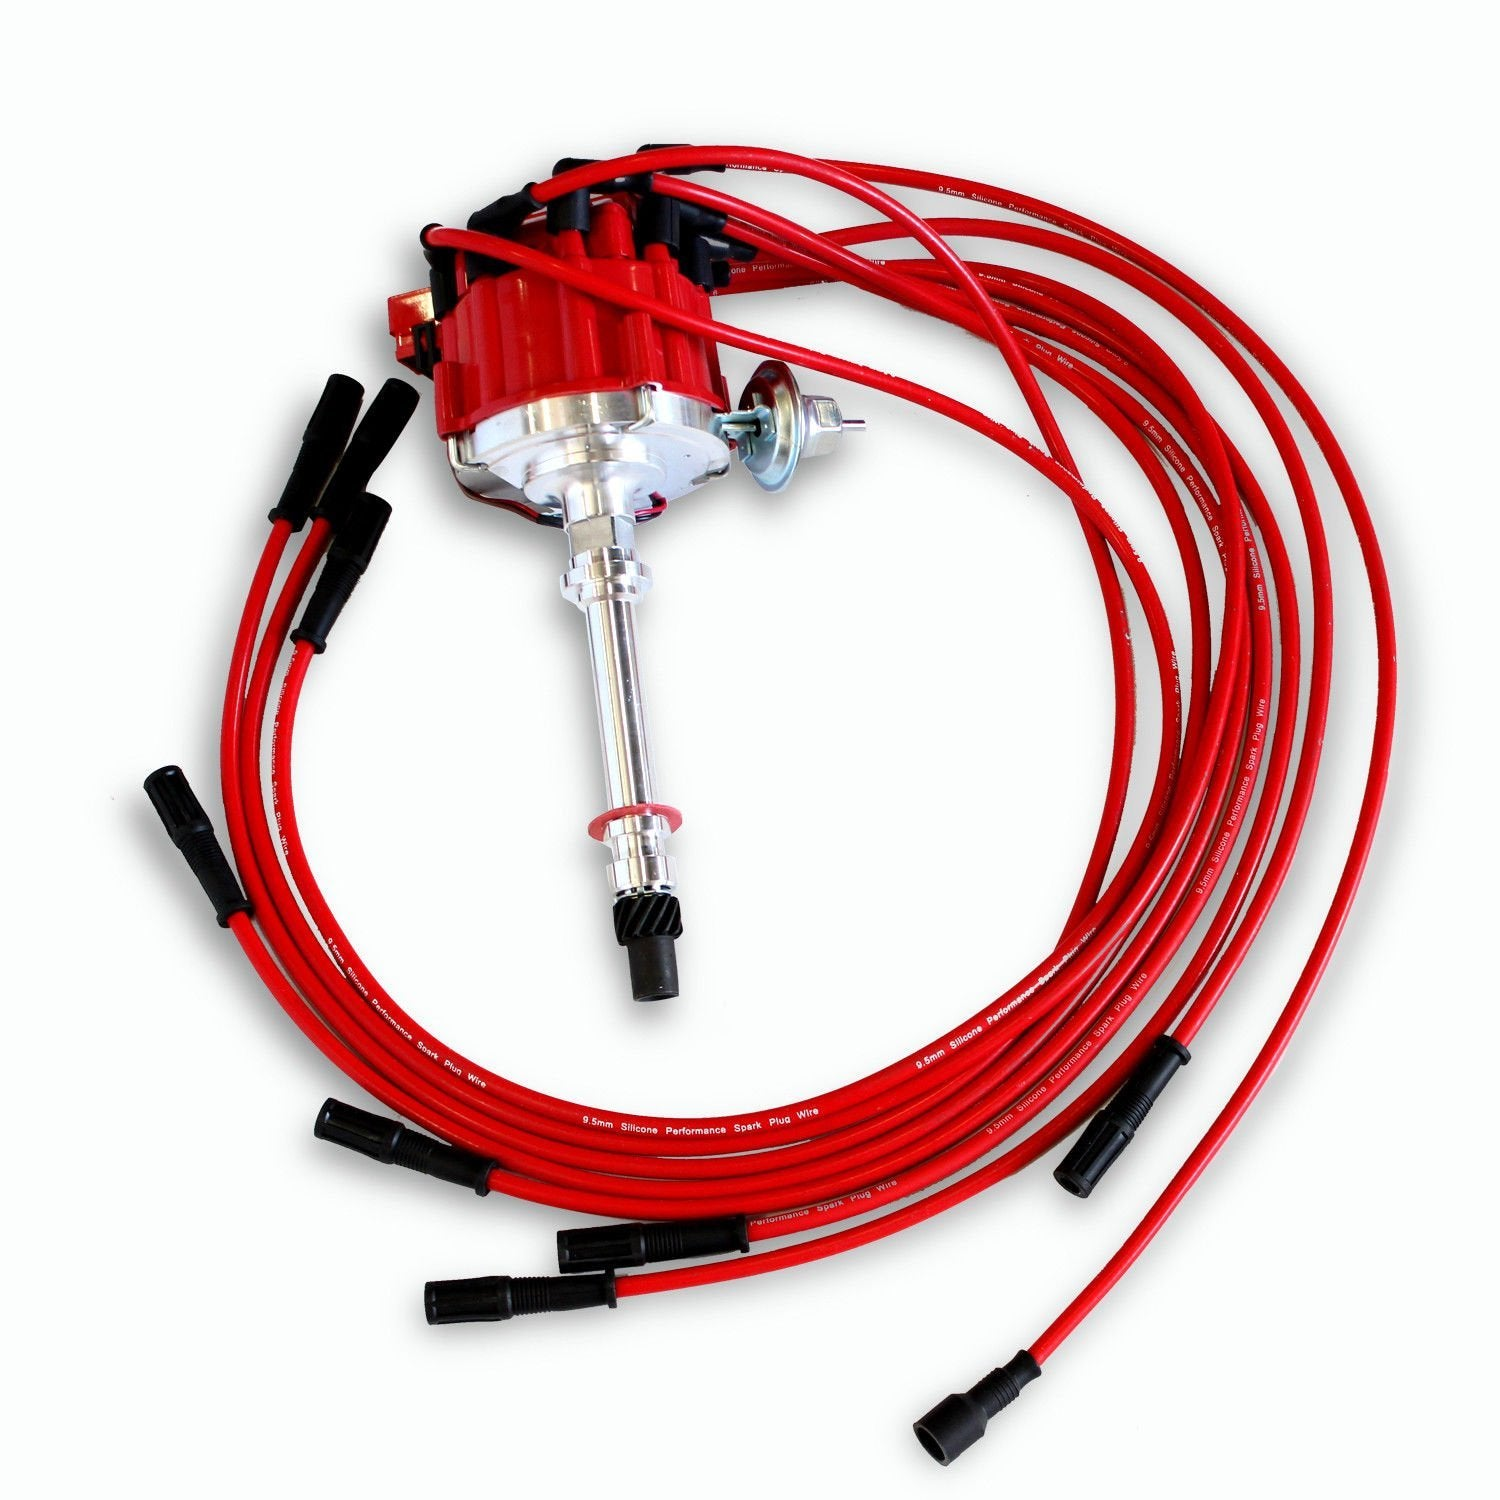 4 Wire Chevy Distributor Wiring Harness Reveolution Of Mallory Diagram Ignition Kits Hei For Sbc 350 Bbc 454 9 5mm Straight Spark Rh Demotoring Com 1984 87